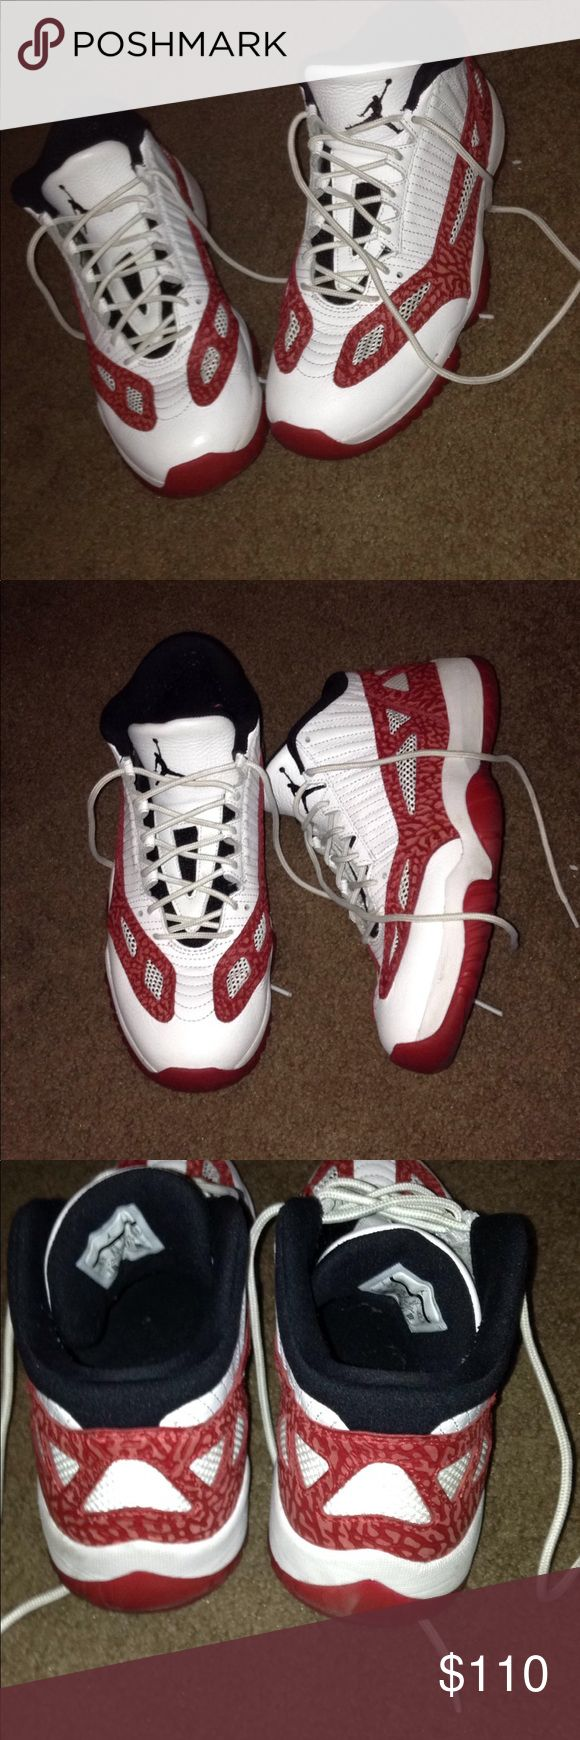 Retro 11 low Jordan's Retro 11 lows  Worn slightly  Size 9.5  Will include SnapBack for additional 25$ Jordan Shoes Sneakers